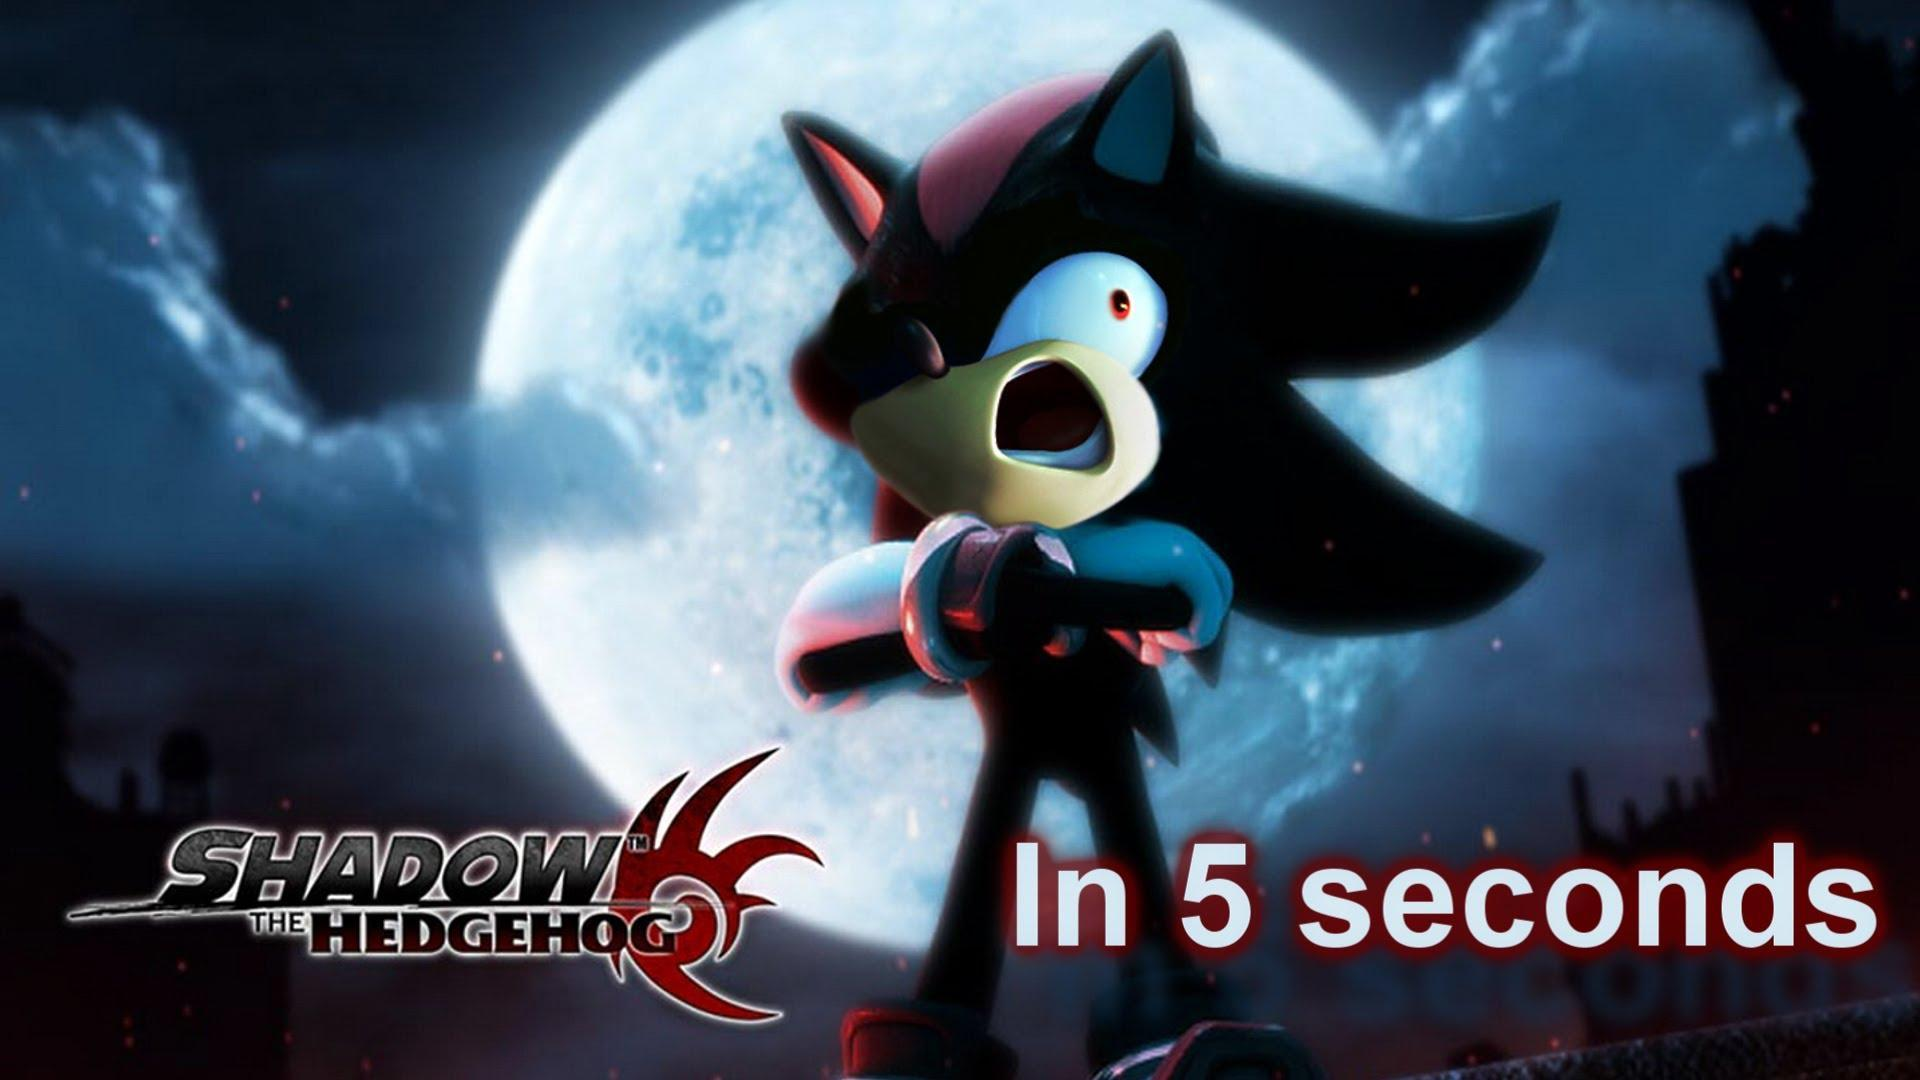 XD How about this? Shadow derp